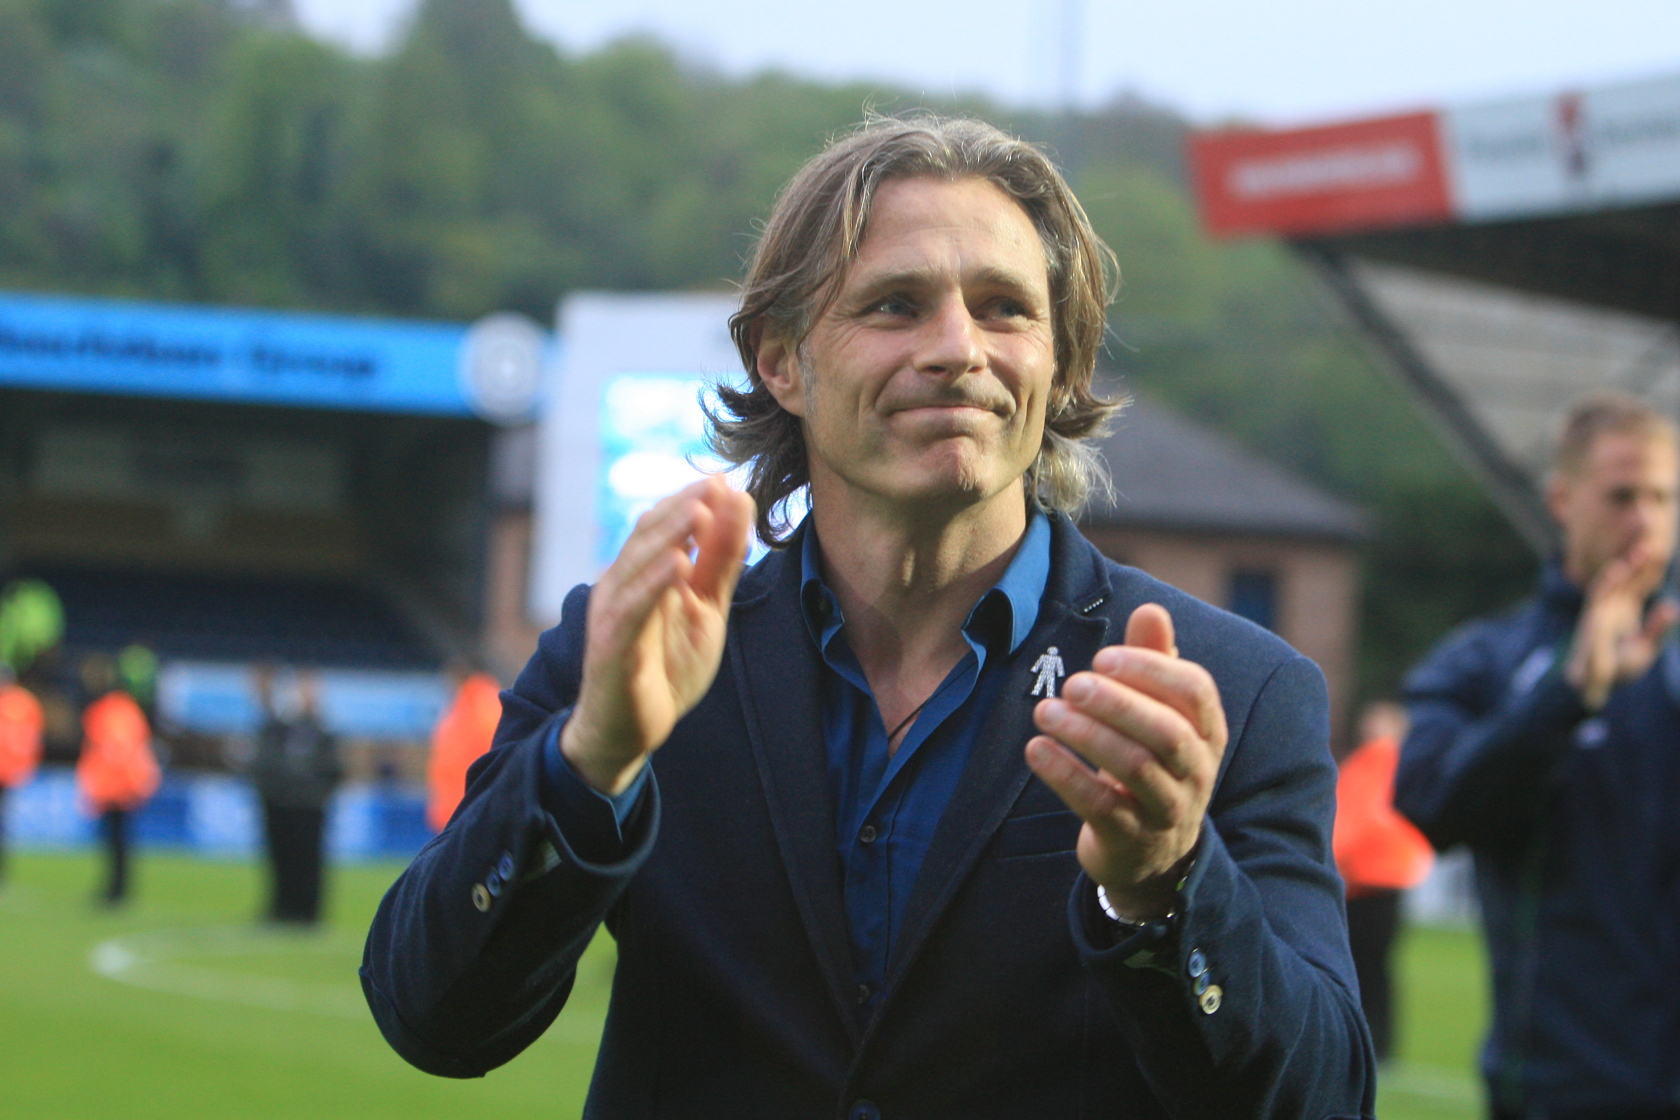 Ainsworth is hopeful of ending their five-game winless run against Crawley